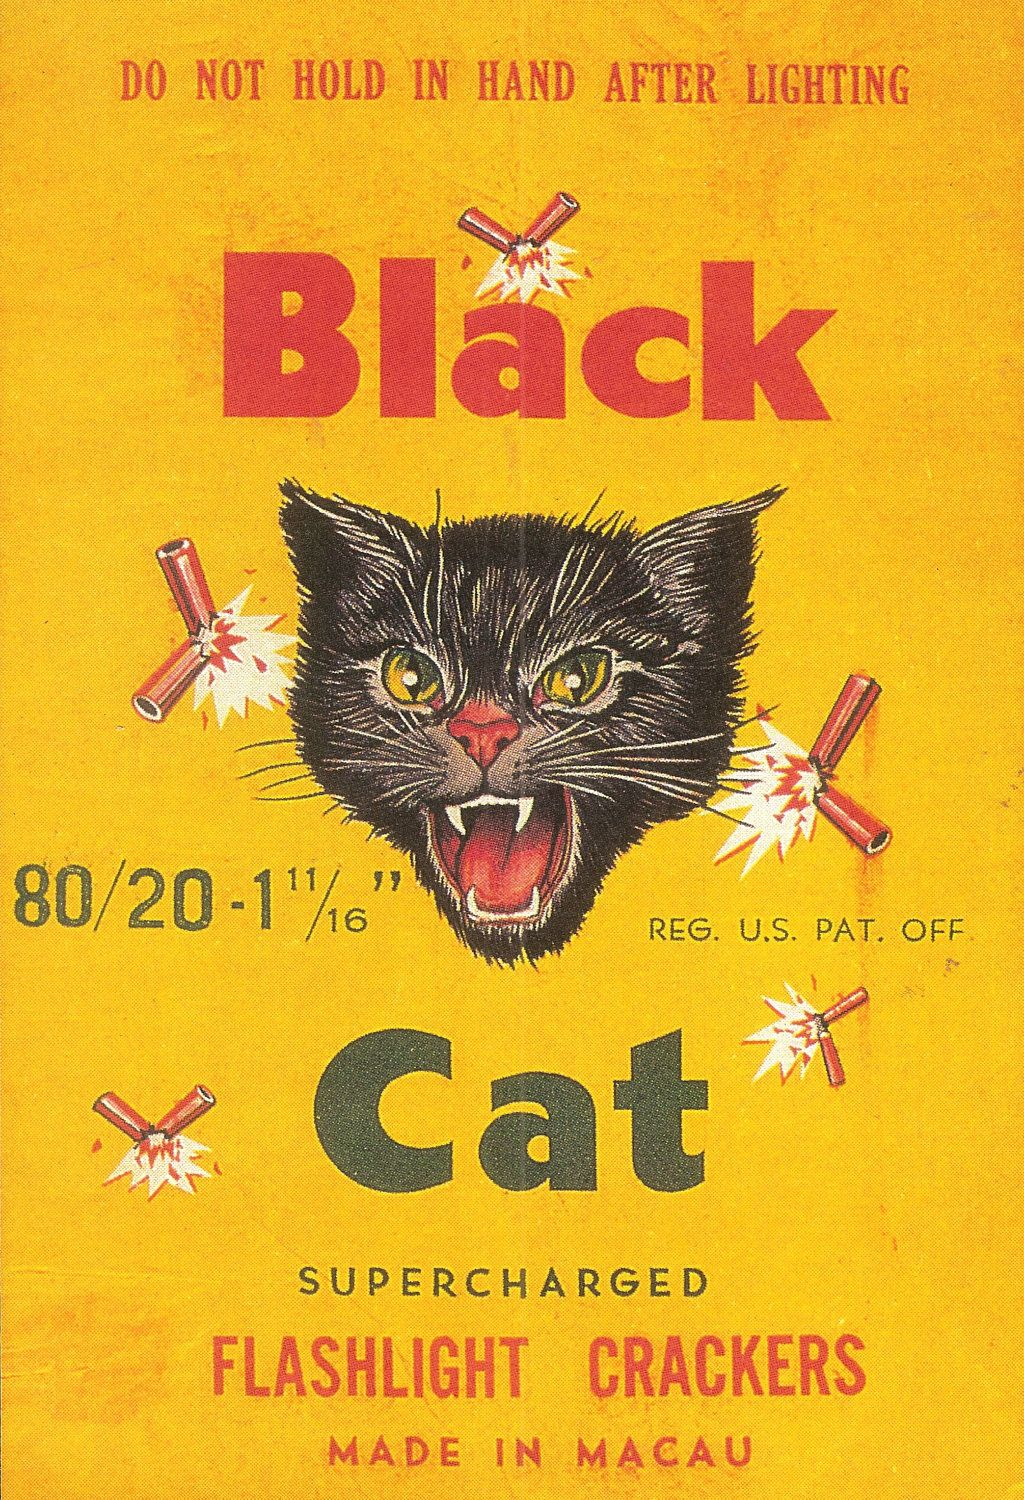 Black Cat Firecrackers What a thrill! ( Black cat